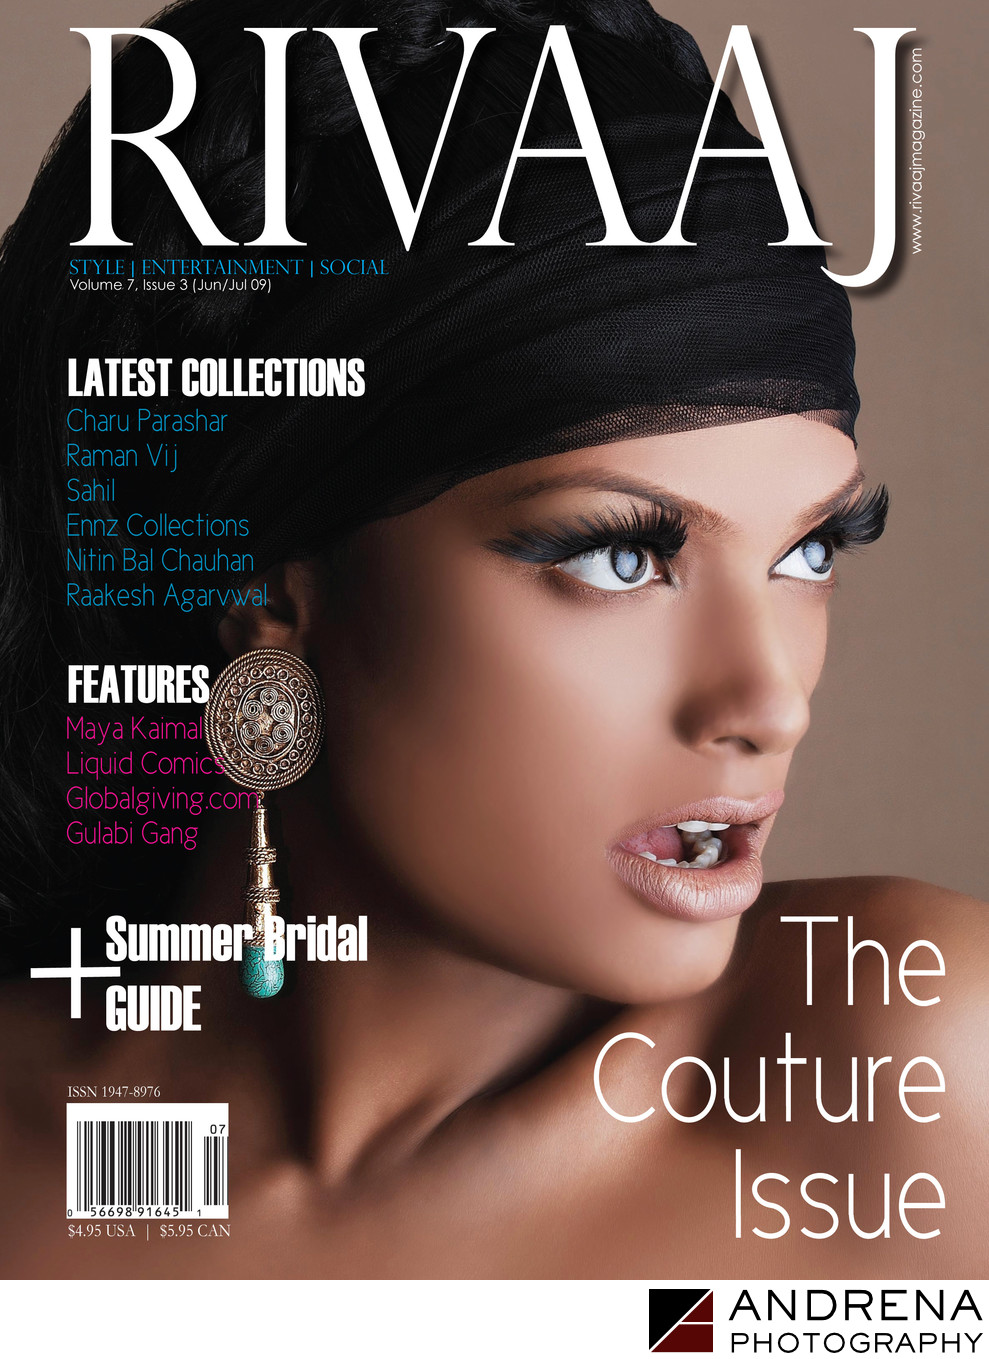 Rivaaj Wedding Magazine Cover